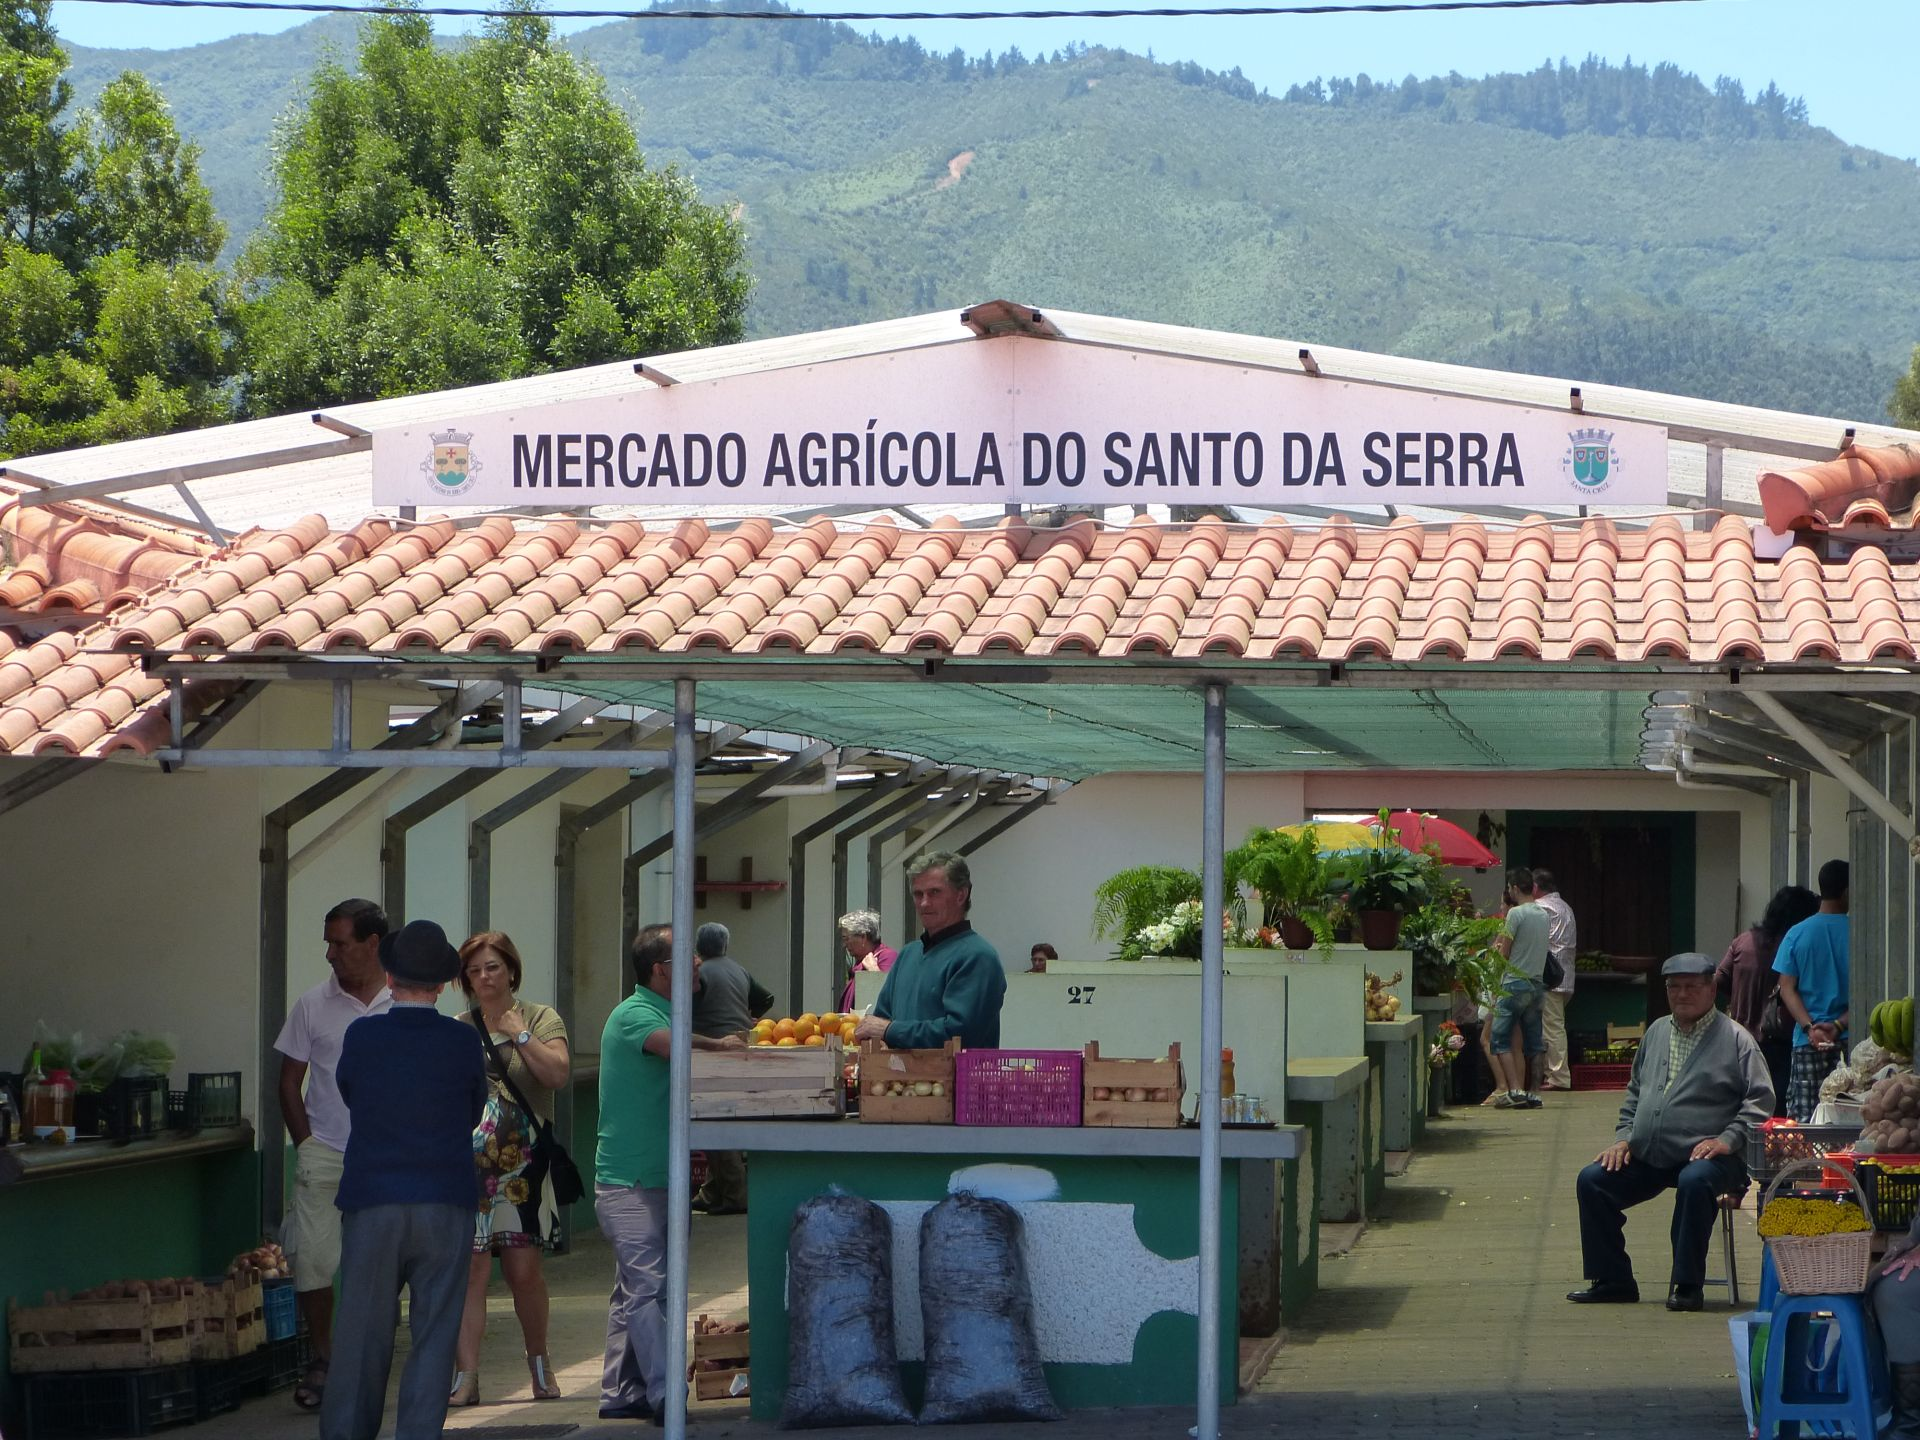 Mercado Agrícola do Santo da Serra